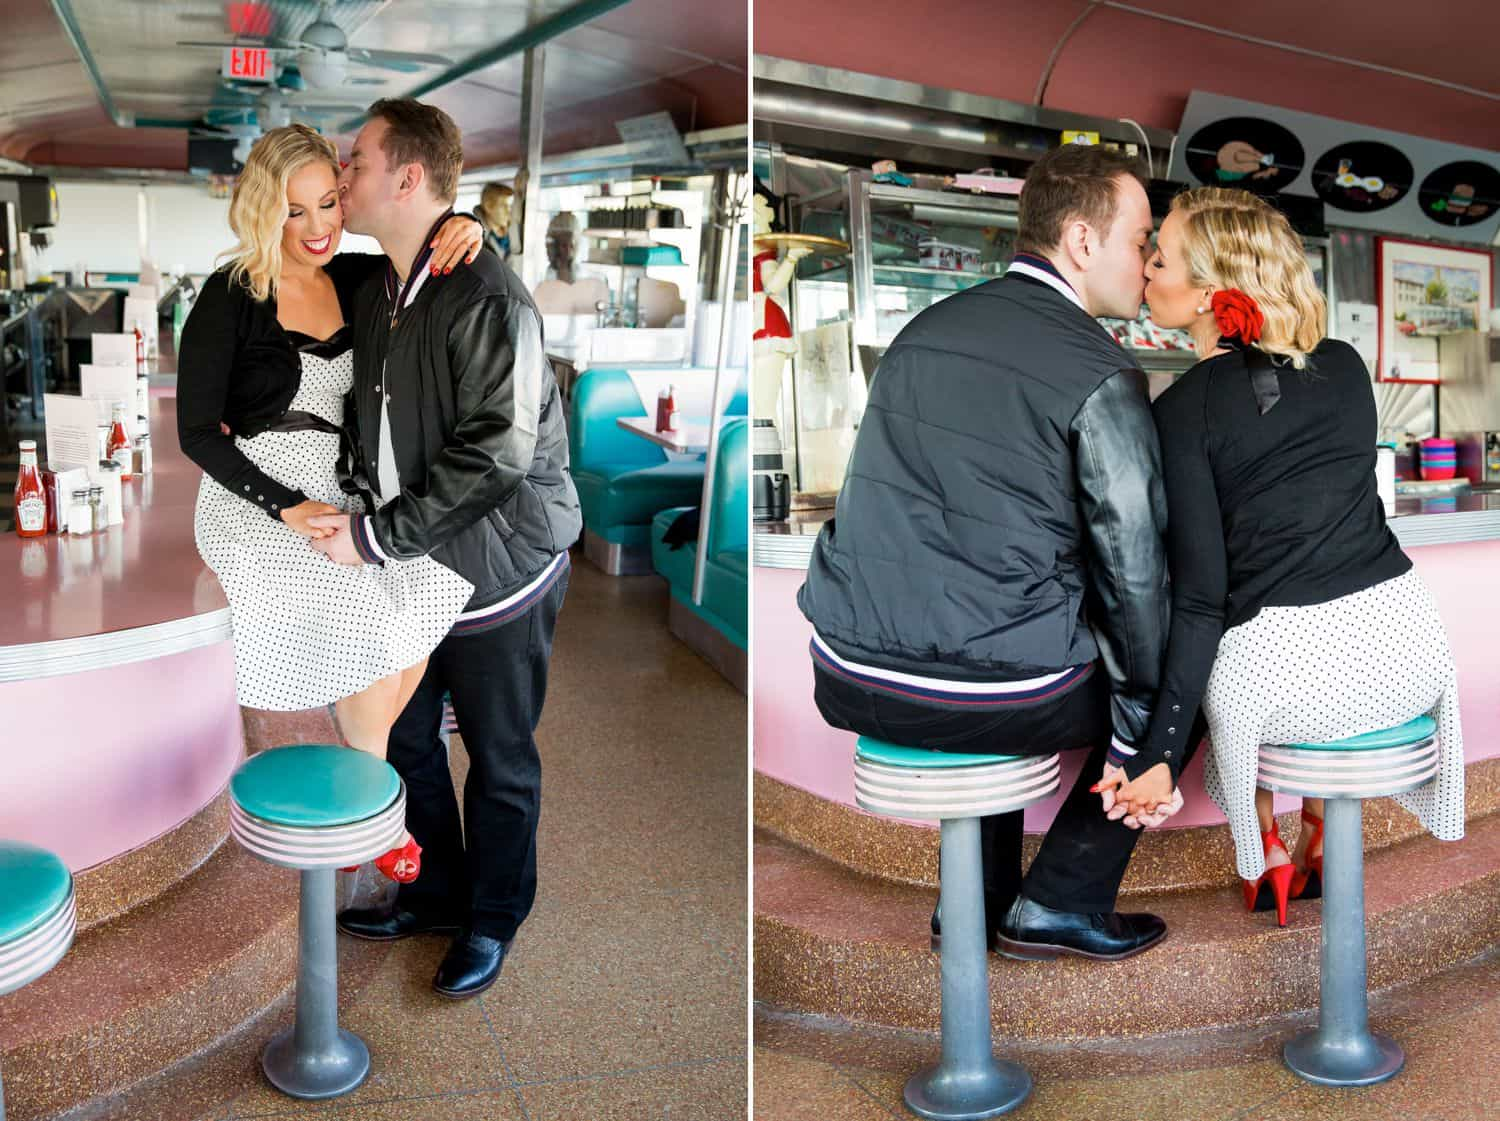 Photos of a couple kissing in a diner